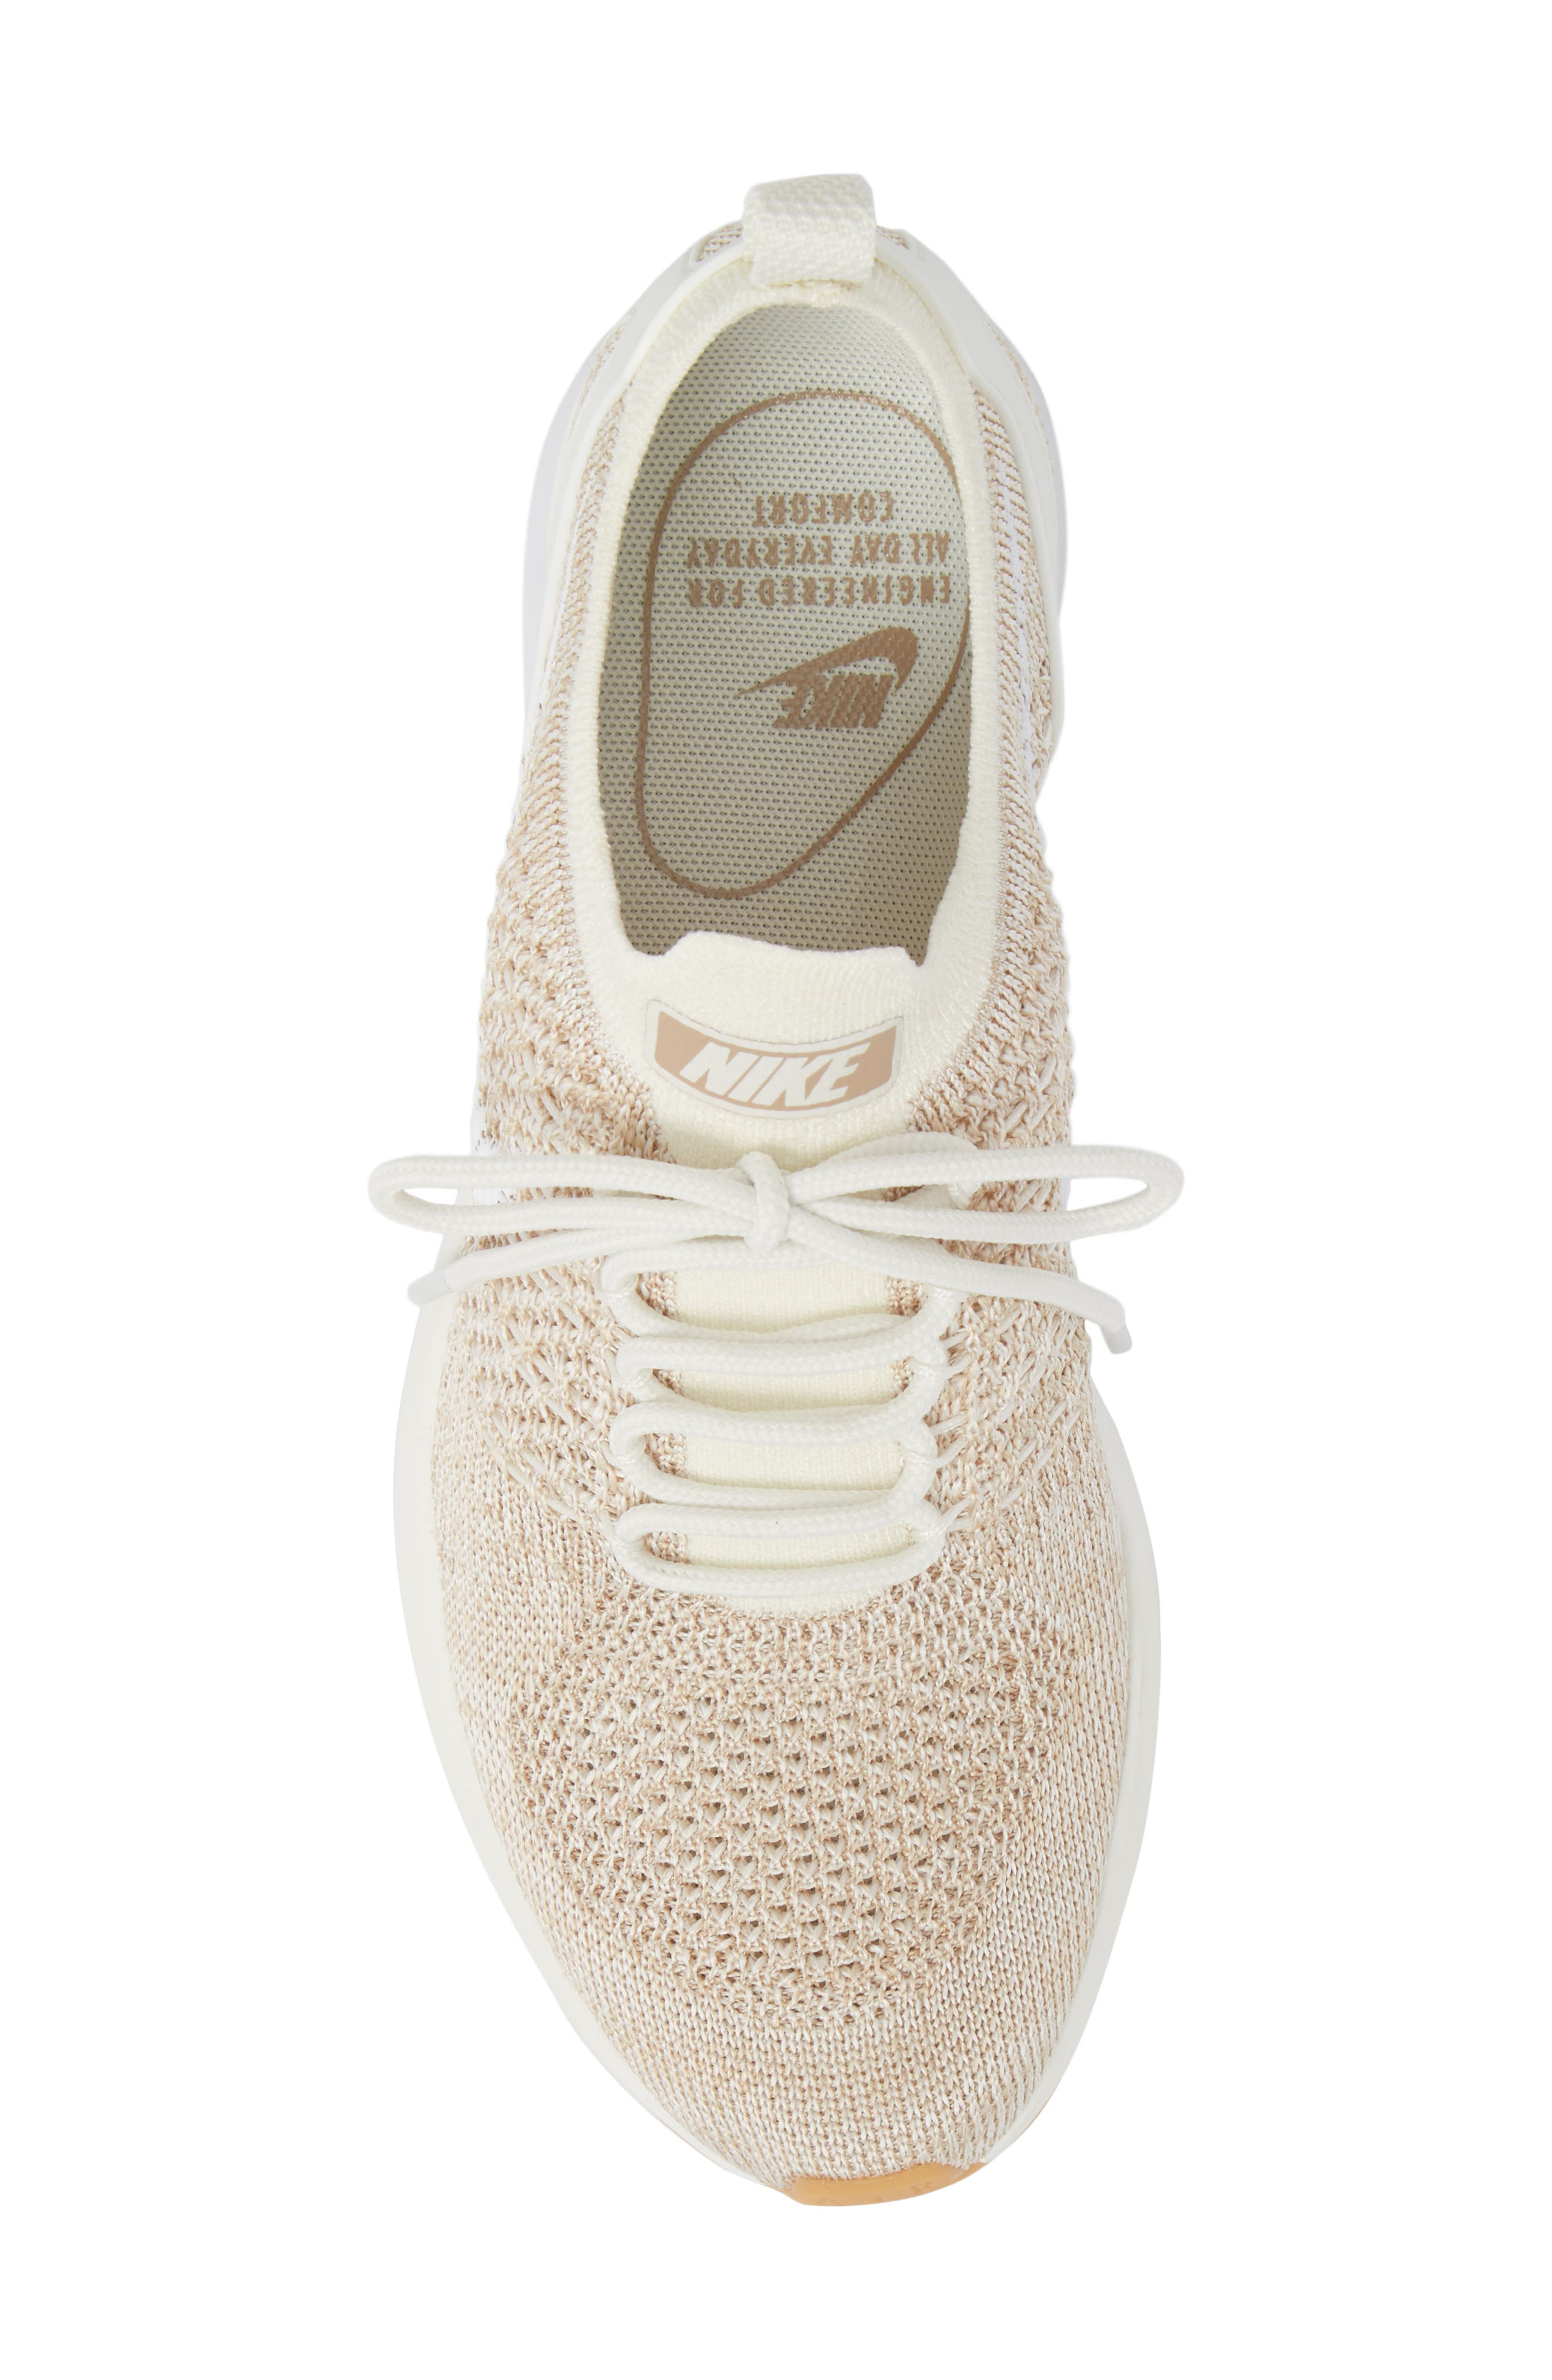 Air Zoom Mariah Flyknit Racer Sneaker,                             Alternate thumbnail 5, color,                             SAIL/ WHITE/ SAND